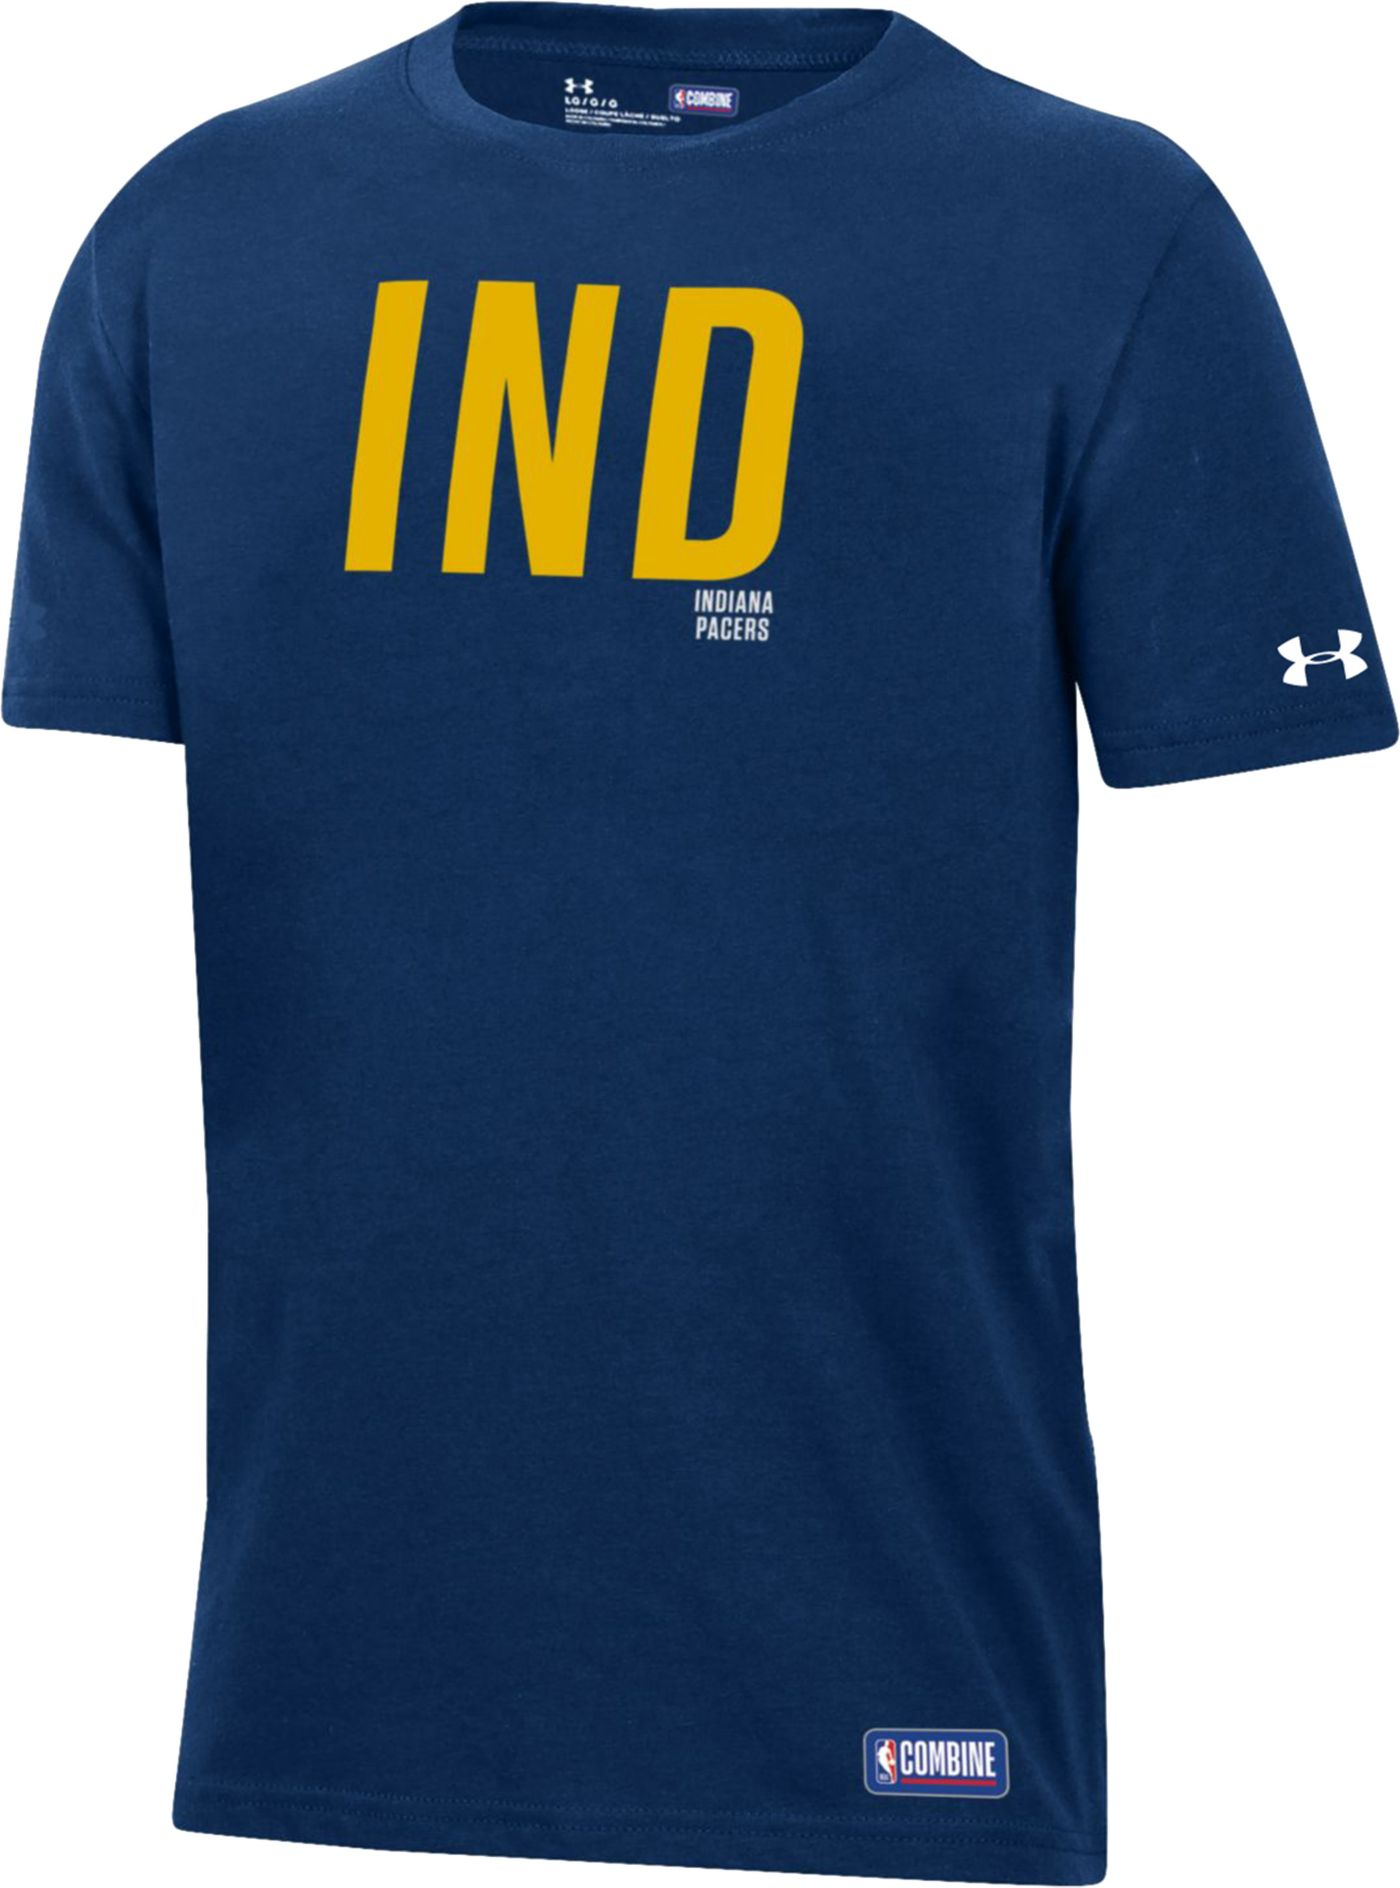 Under Armour Youth Indiana Pacers Performance T-Shirt